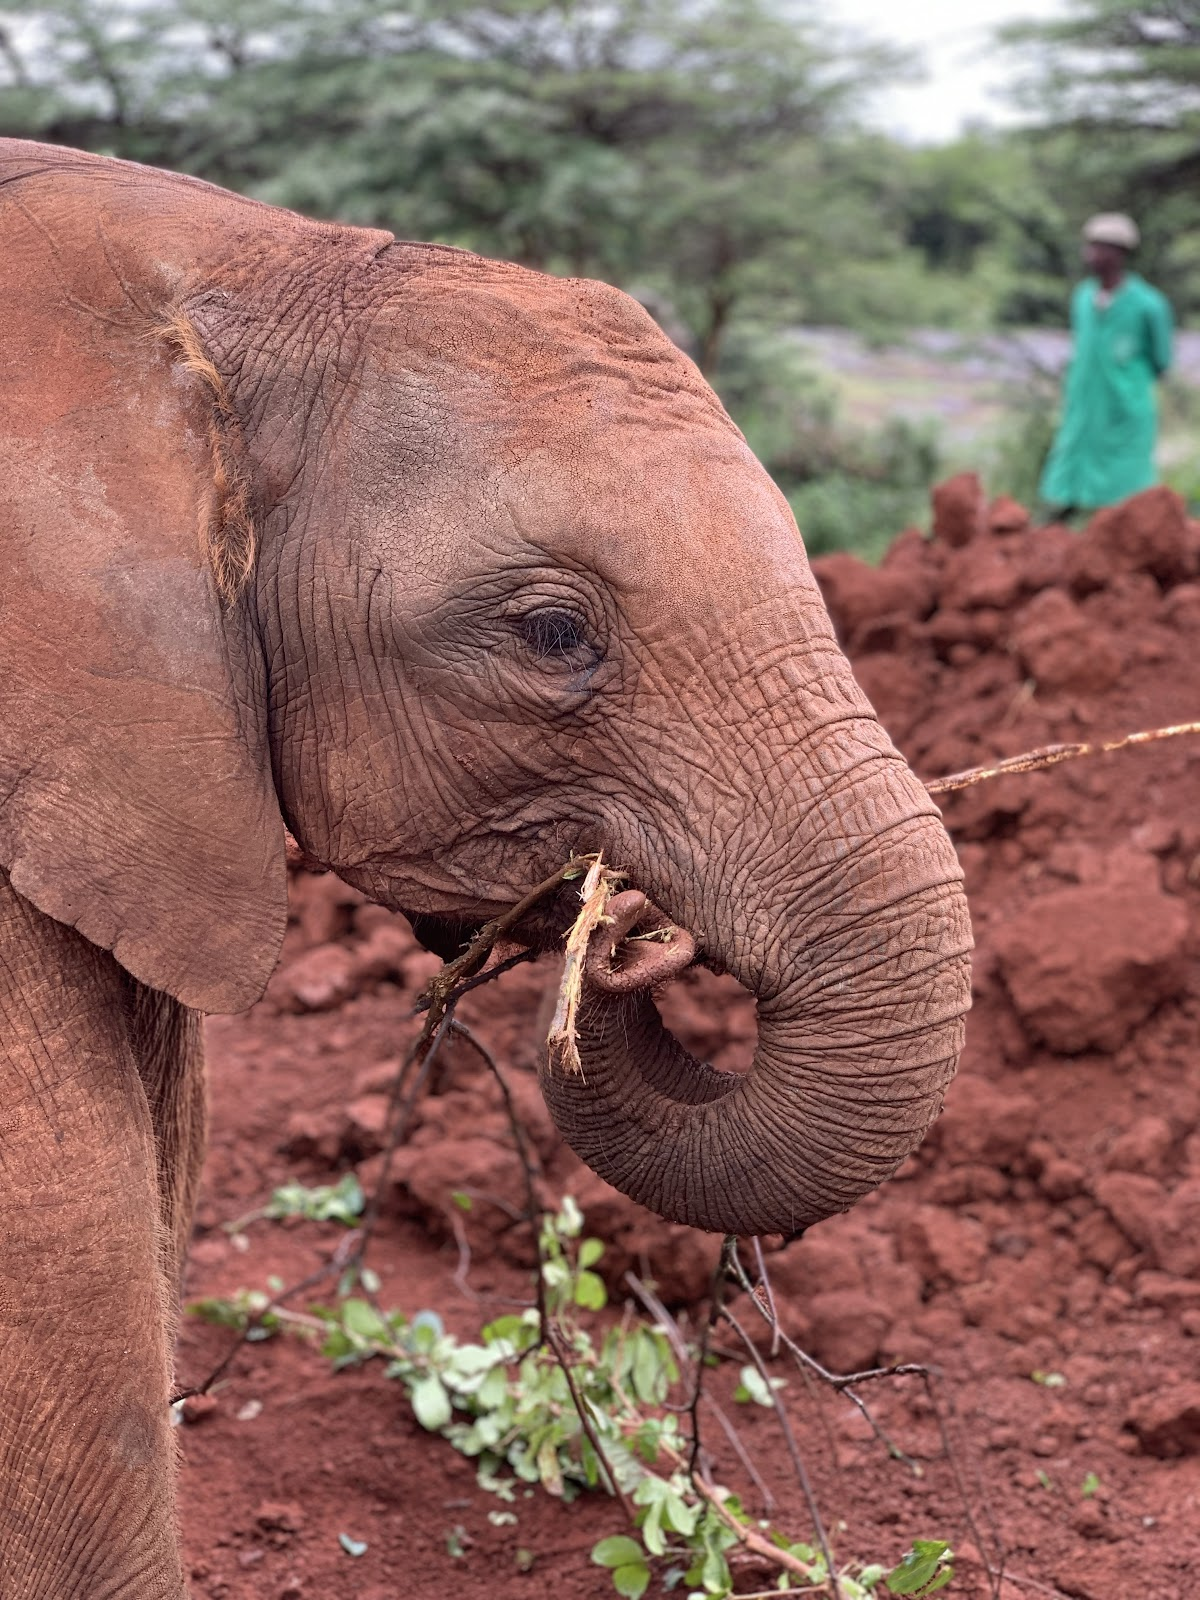 DSWT. Ultimate Nairobi City Guide - Part 2 Photo by Young Lee @nakslee